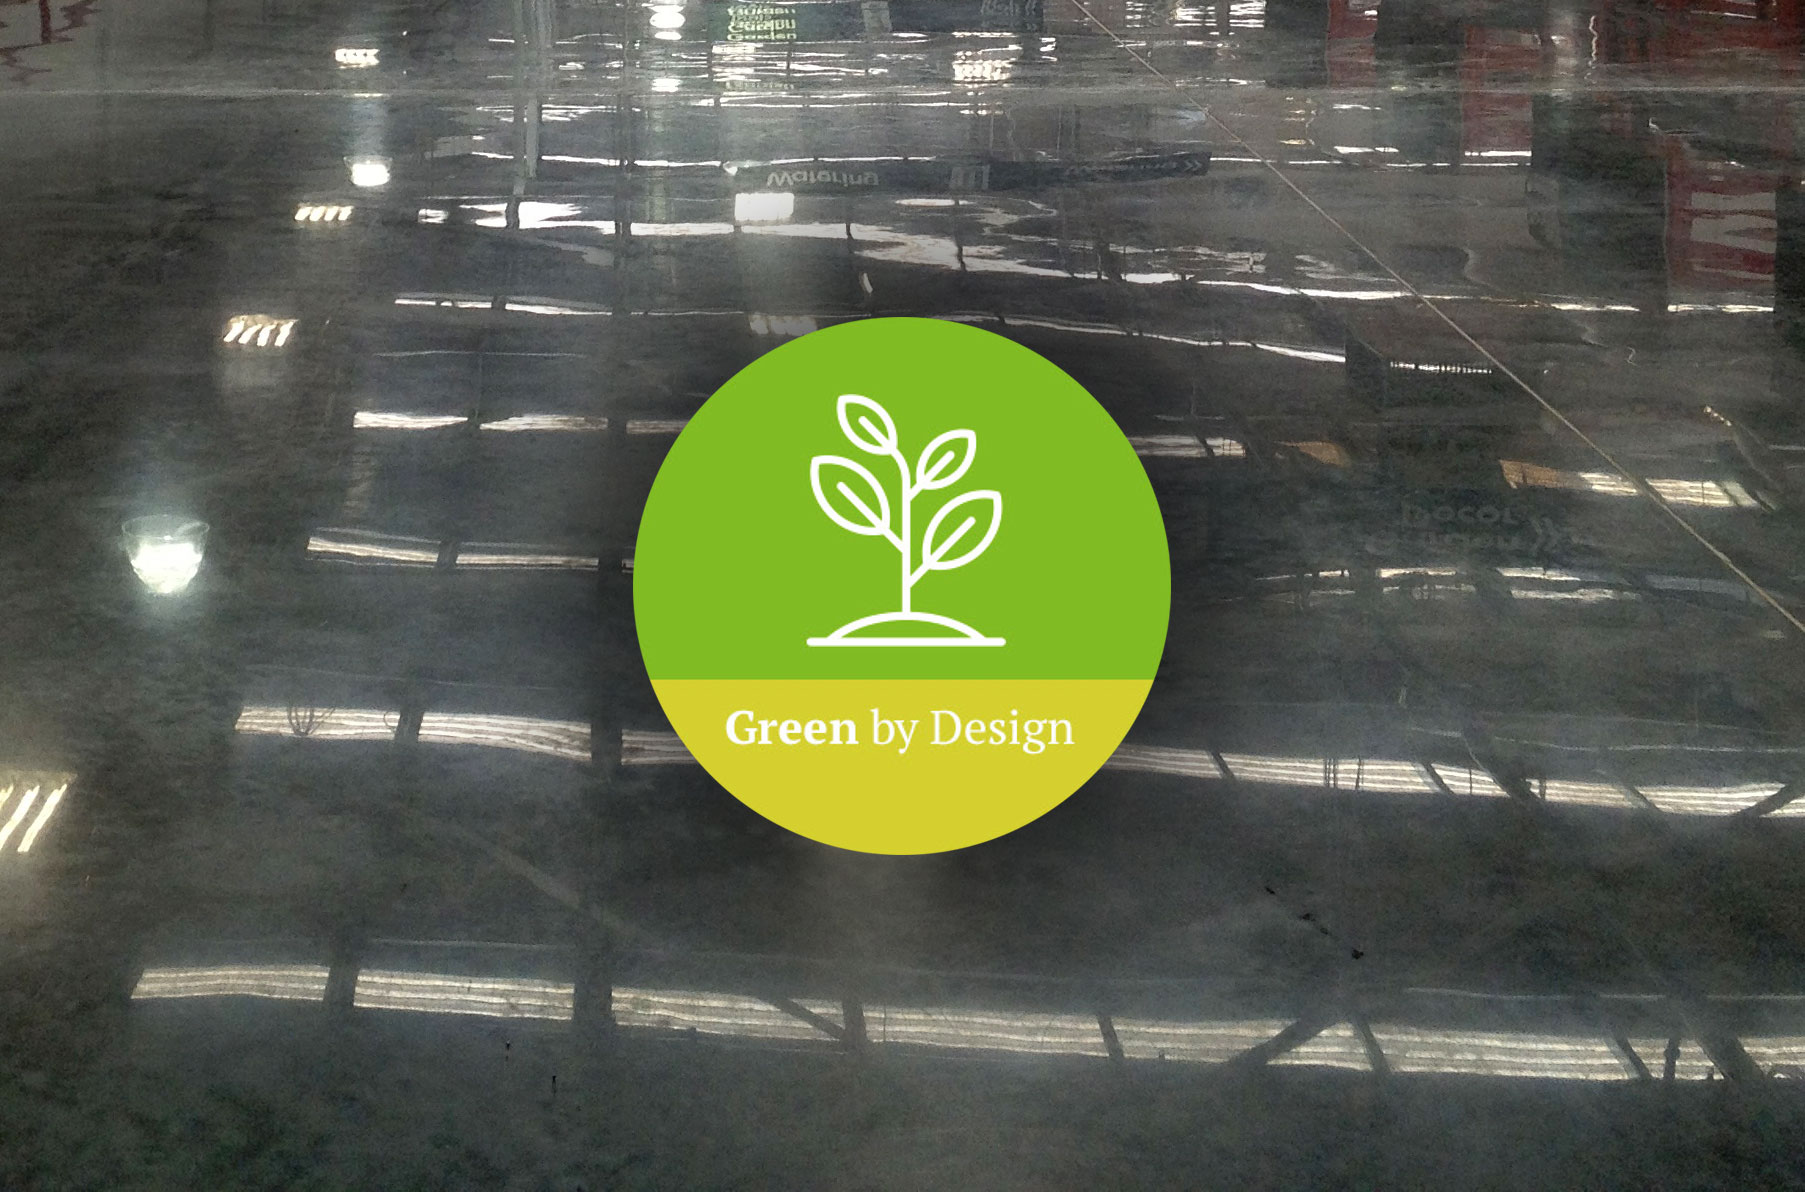 GREEN by DESIGN - Green Concrete Products leads the field by supplying products that are Green by Design.Our products can help to contribute to LEED Certification and Green Star builds.